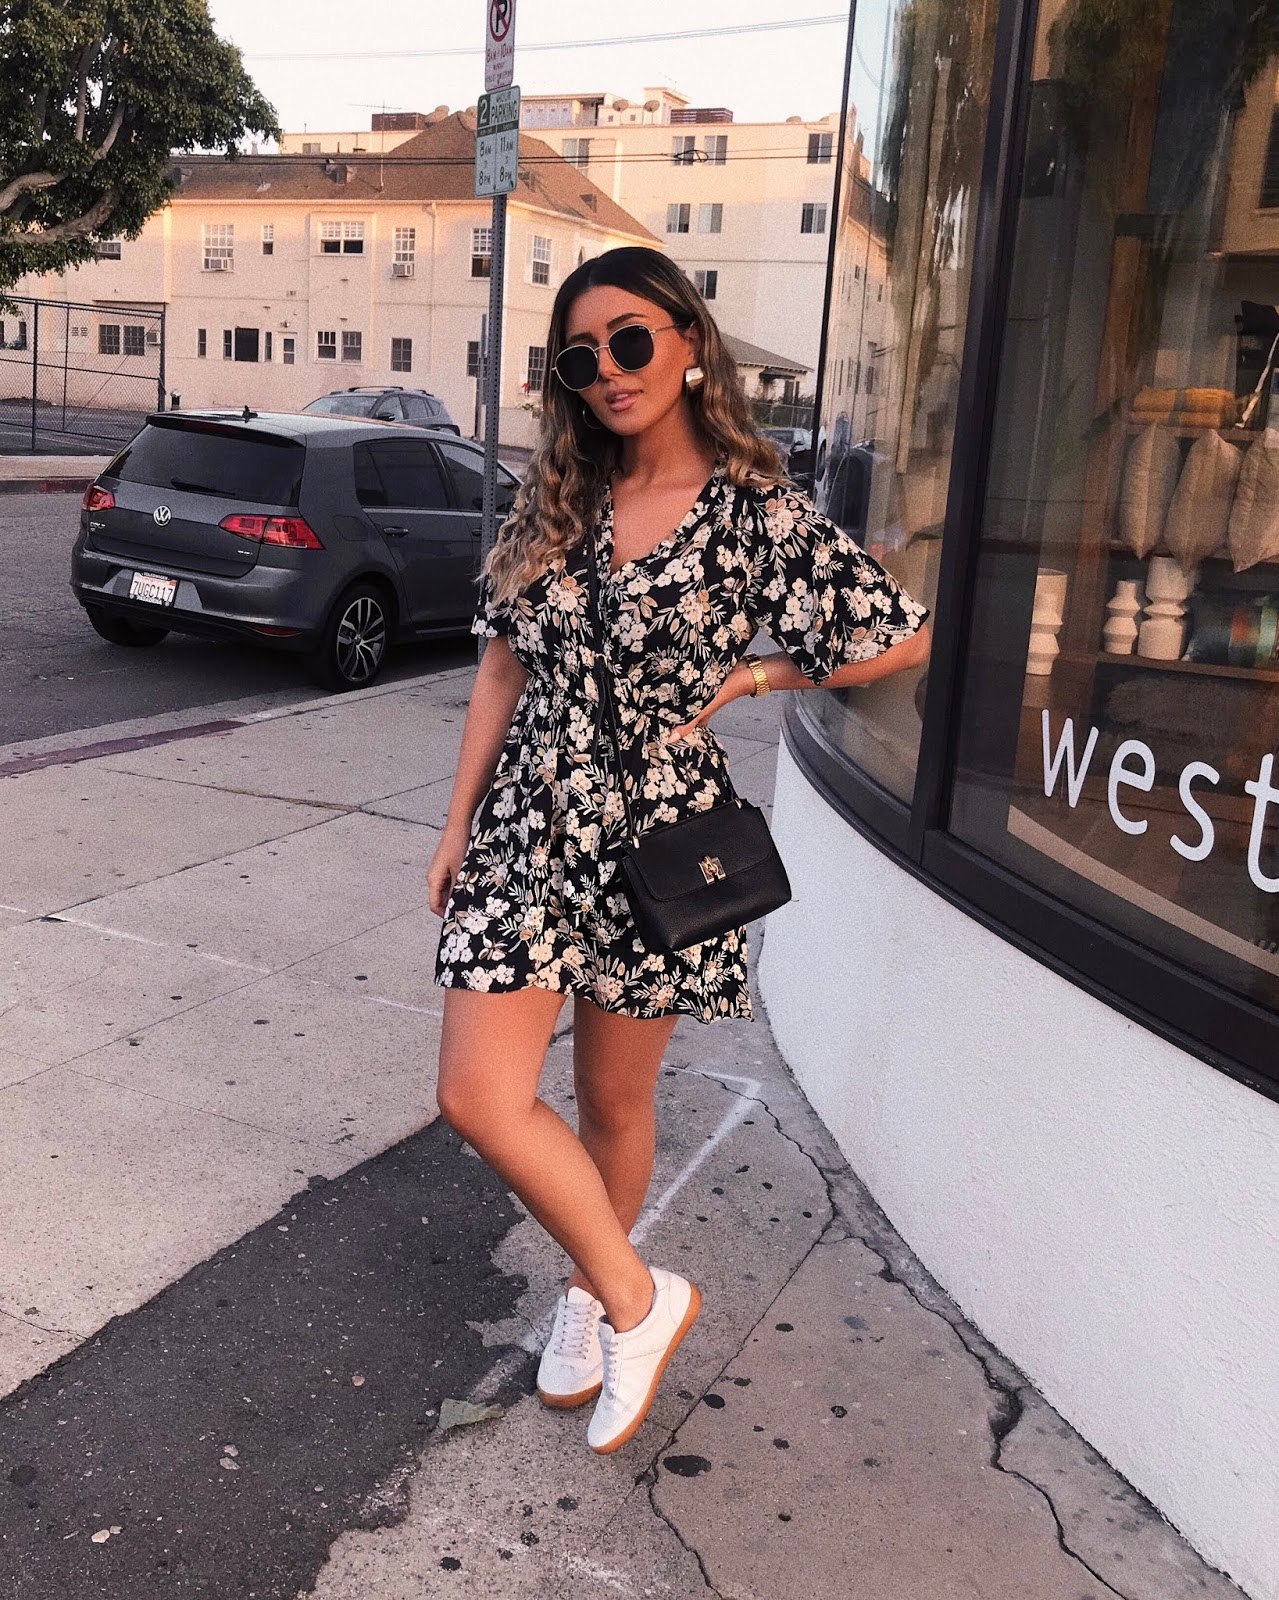 how to style, dress and sneakers outfit, floral dress, summer 2018 trends, mango crossbody, zara floral dress, dark florals, asos sneakers, affordable outfit, Pinterest, outfit idea, how I style, fashion blogger, quay Australia sunglasses, asos hoops, summer 2018 outfit, Parmida Kiani,